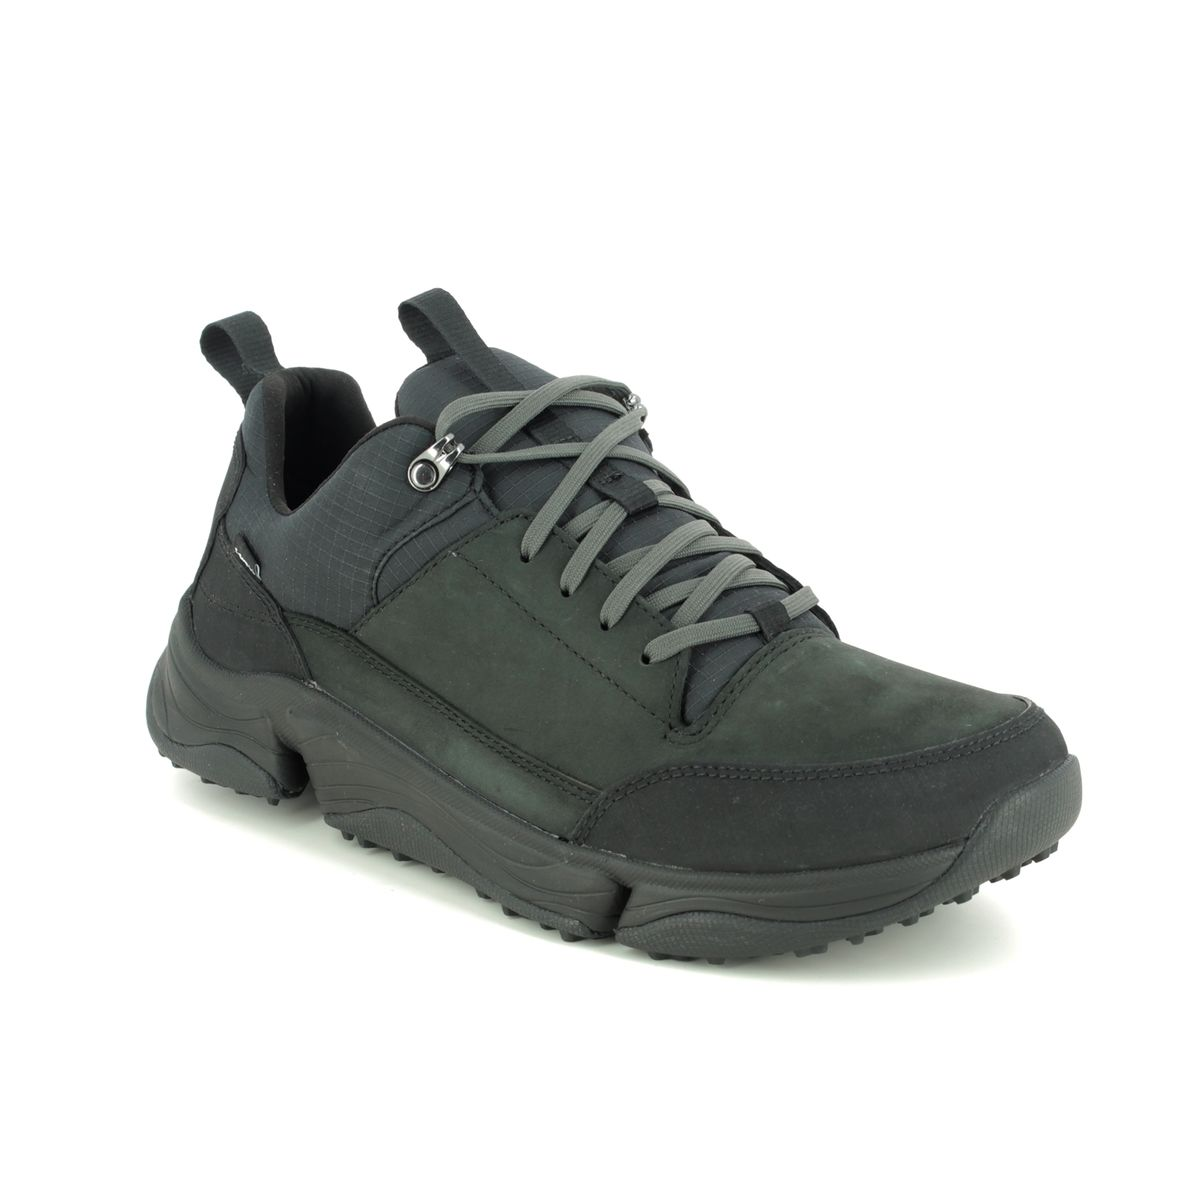 Boys Clarks Trail Walk First Walking Casual Shoes